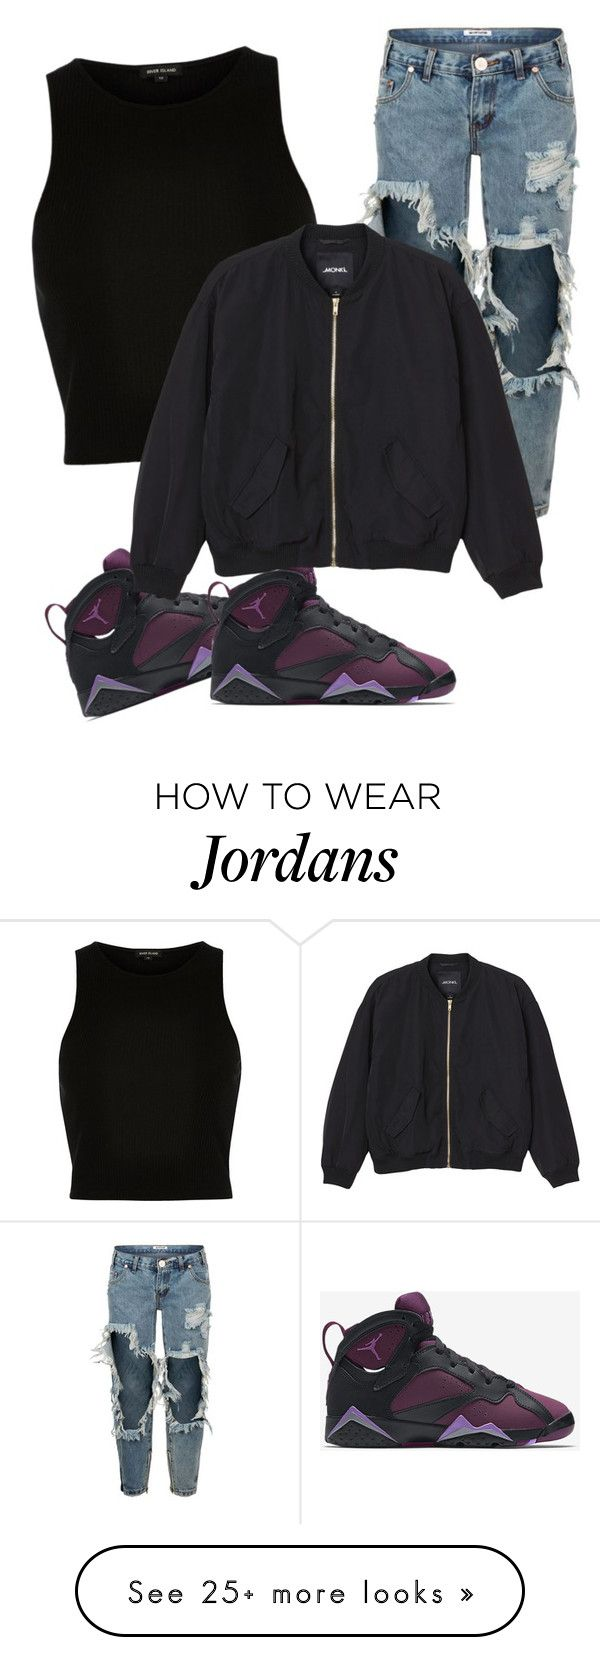 """"""""""" by pknyshia on Polyvore featuring River Island, One Teaspoon, NIKE, Monki, women's clothing, women, female, woman, misses and juniors"""